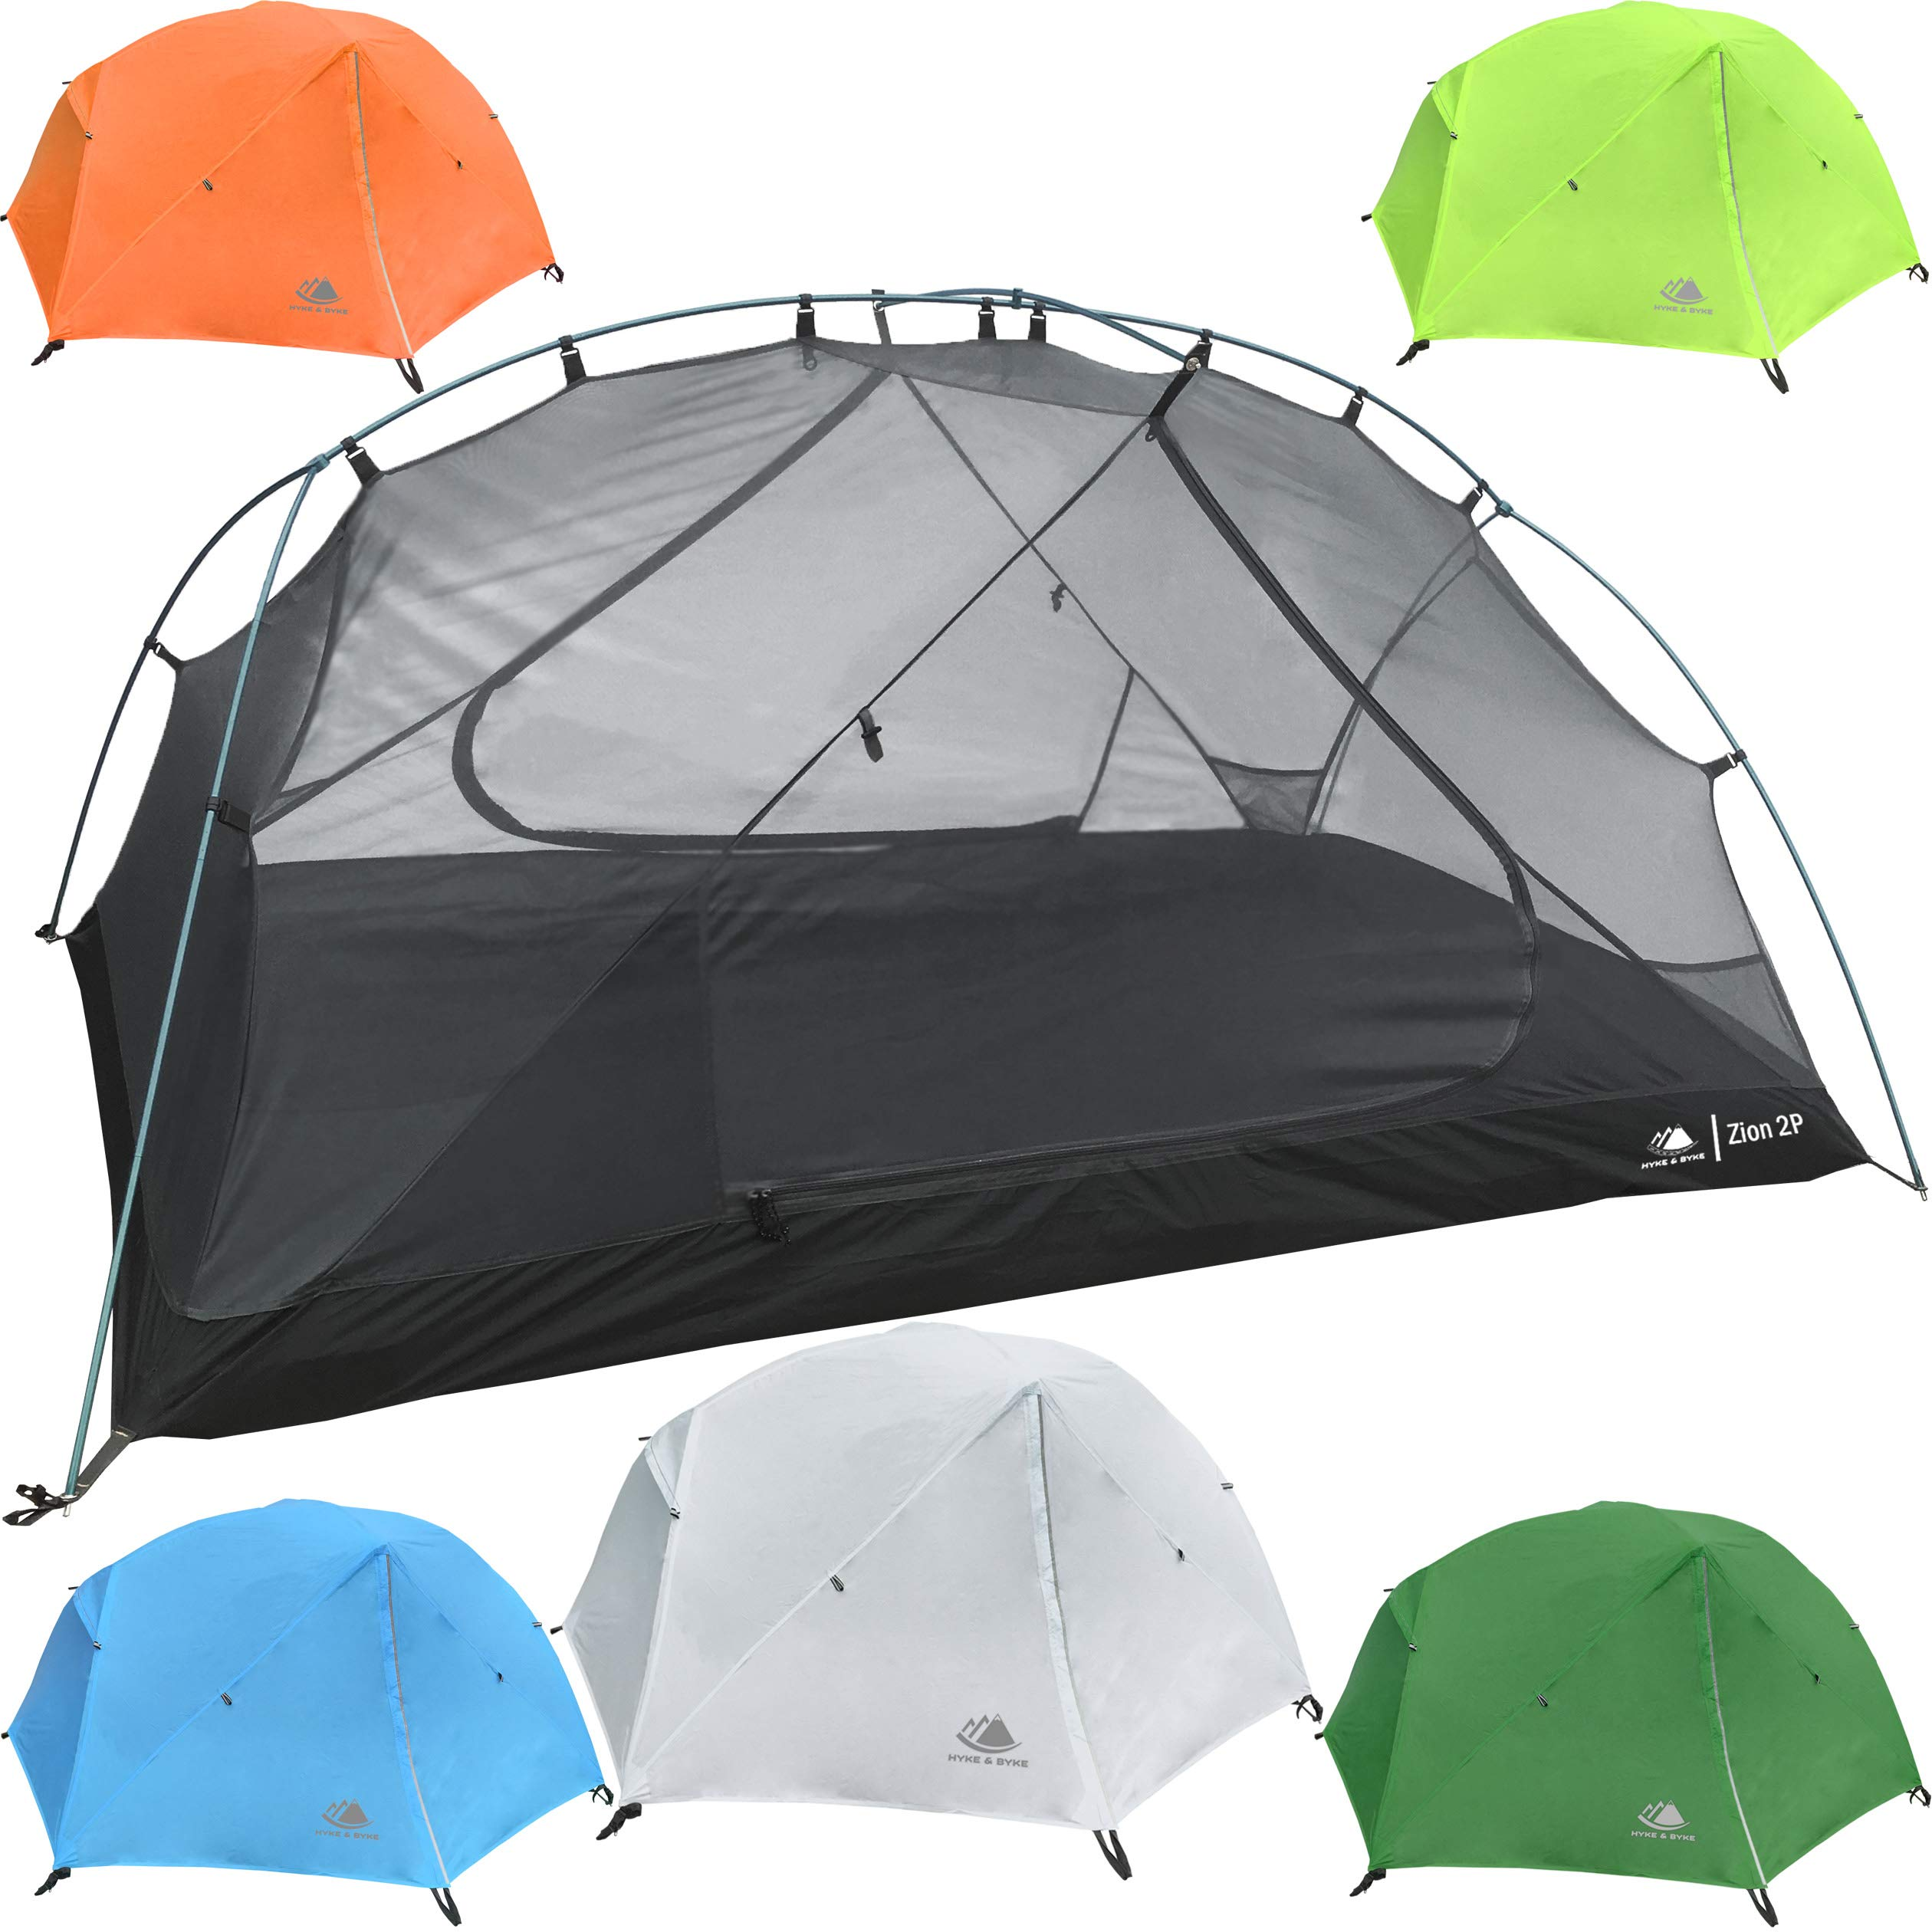 Hyke & Byke 2 Person Backpacking Tent with Footprint - Lightweight Zion Two Man 3 Season Ultralight, Waterproof, Ultra Compact 2p Freestanding Backpack Tents for Camping and Hiking (White) by Hyke & Byke